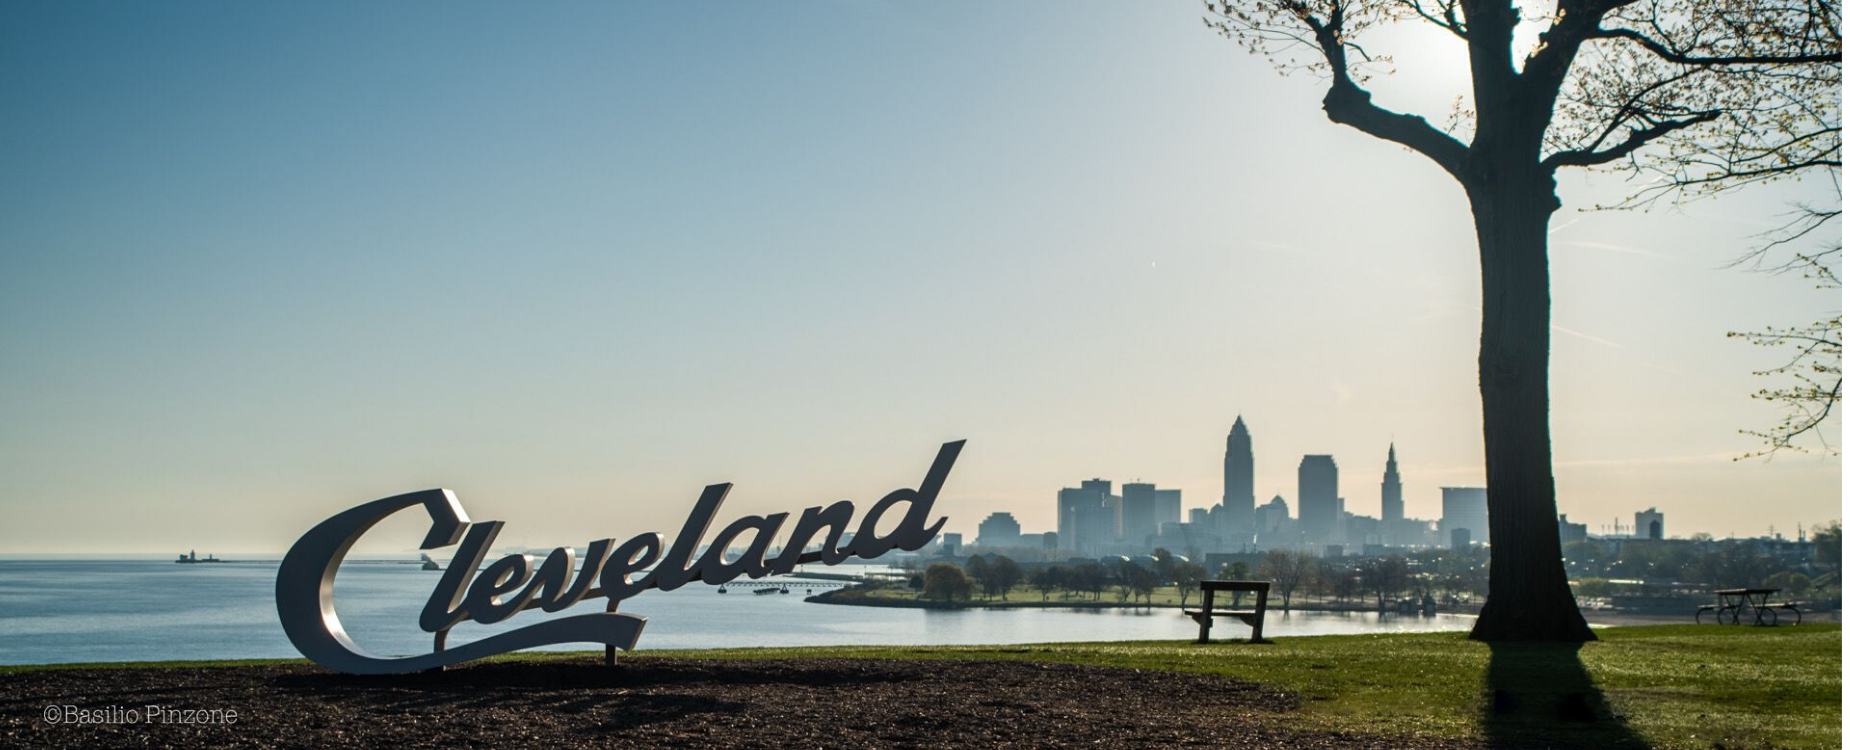 Real Estate Activity in Cleveland Ohio